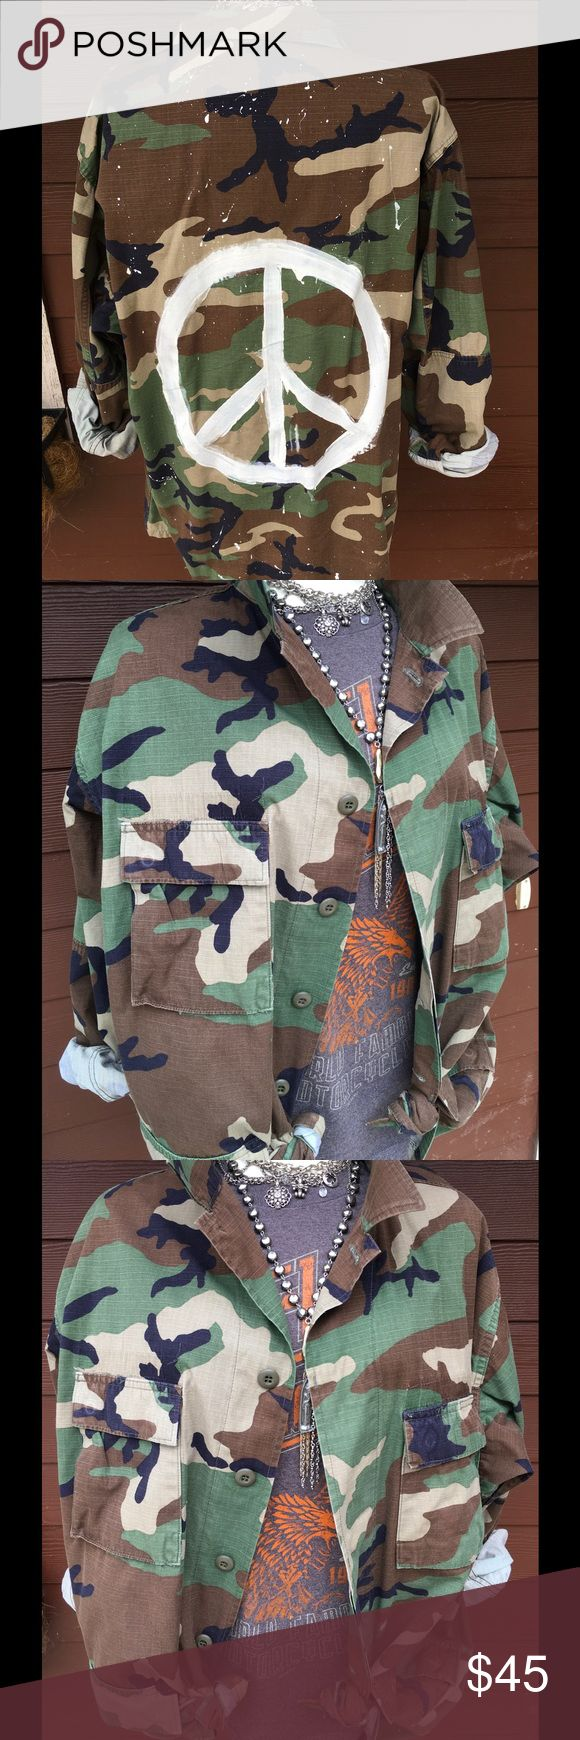 Army jacket reworked! Unique hand painted repurposed army jacket. Men's large worn as a women's oversized. Many uniques ways to wear this great jacket! Jackets & Coats Utility Jackets